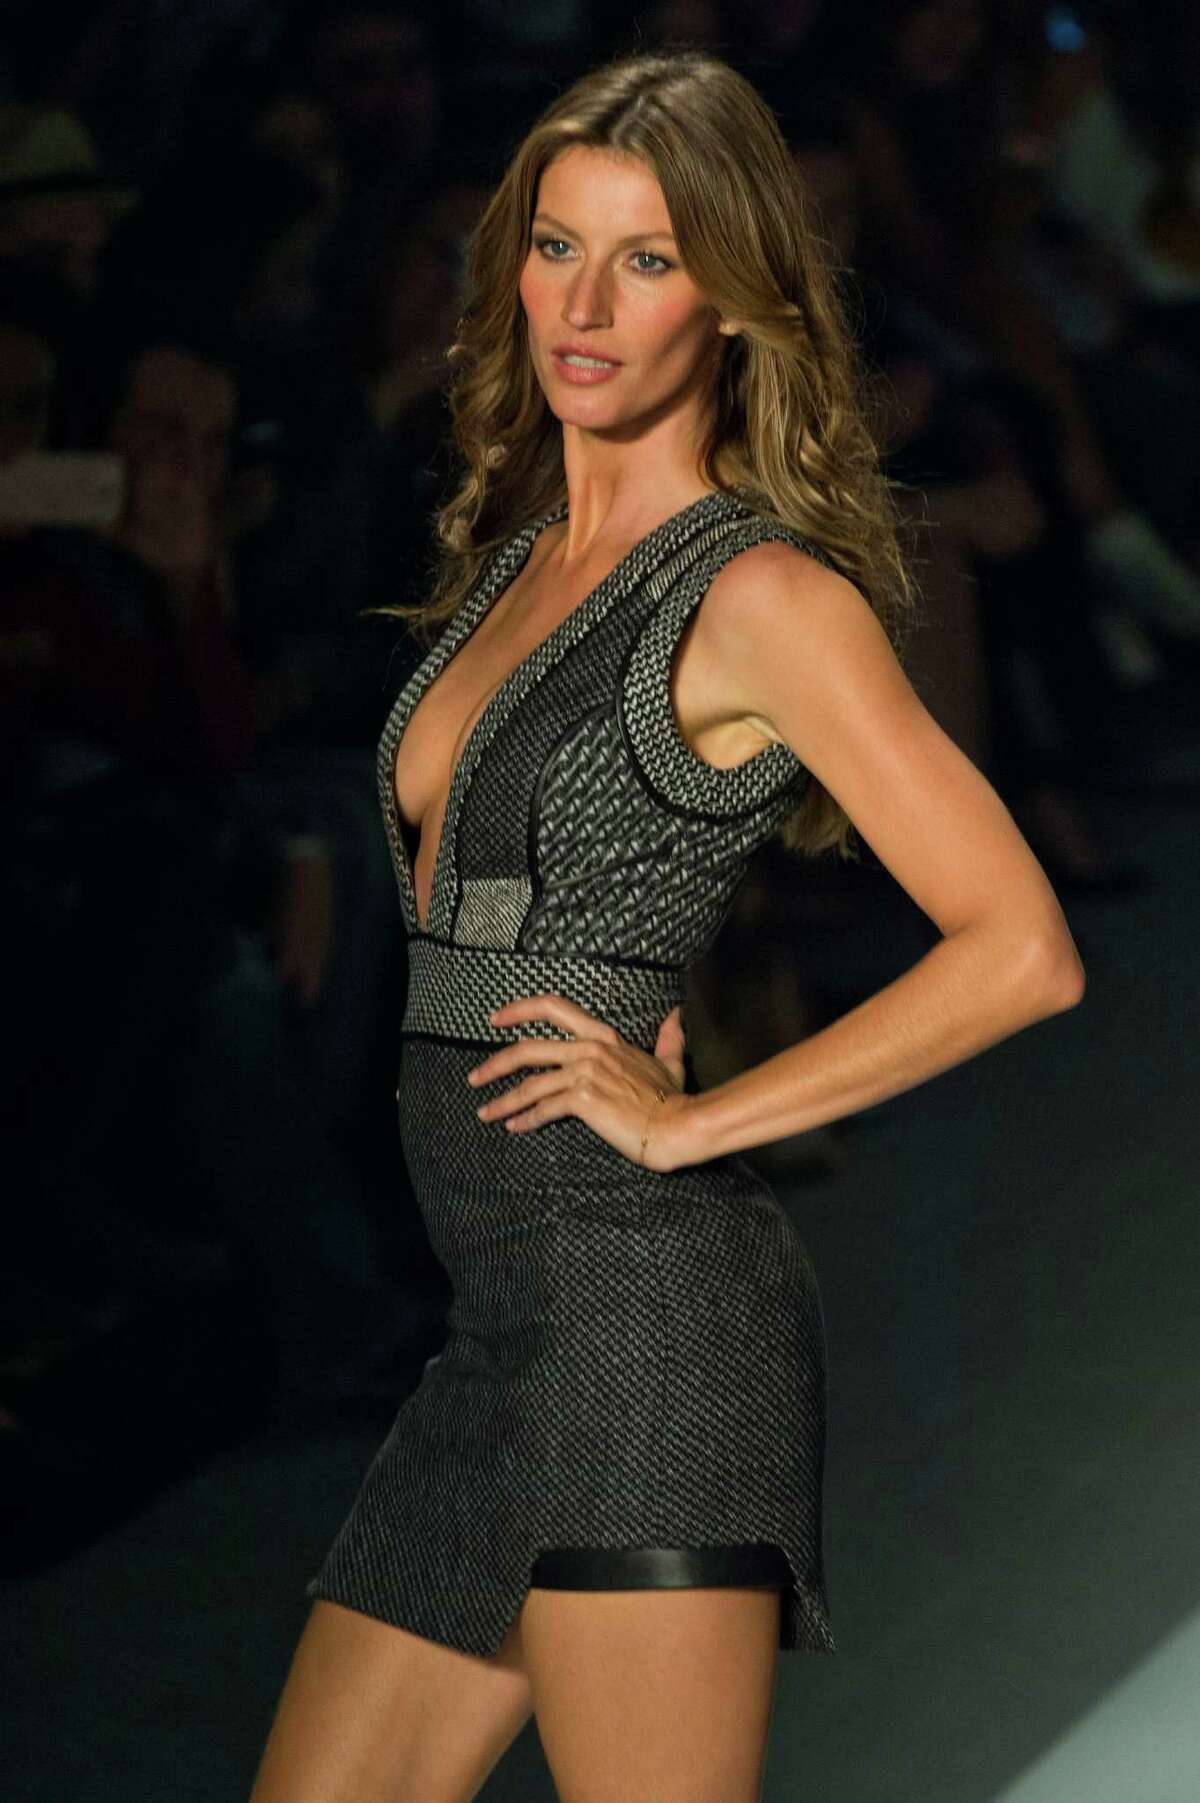 Brazilian supermodel Gisele Bundchen presents a creation by Colcci during the 2014 Winter collections of the Sao Paulo Fashion Week in Sao Paulo, Brazil, on October 31, 2013. AFP PHOTO / Nelson ALMEIDA